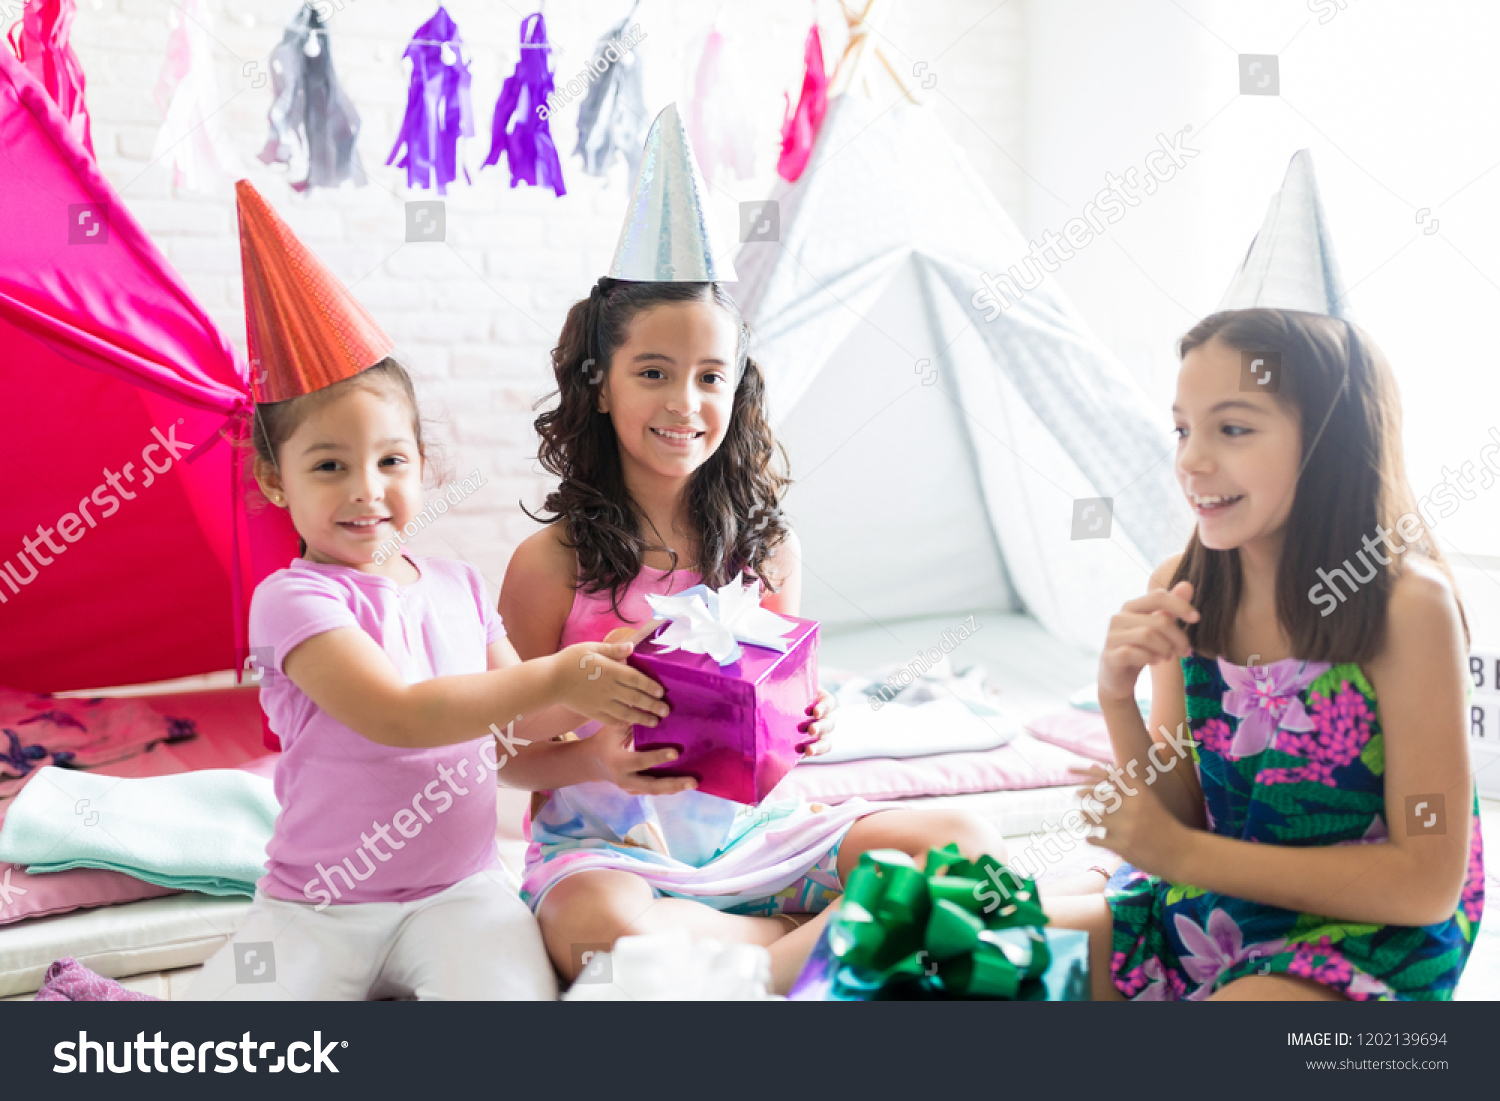 Happy Little Girl Giving Birthday Present To Friend During Pajama Party At Home